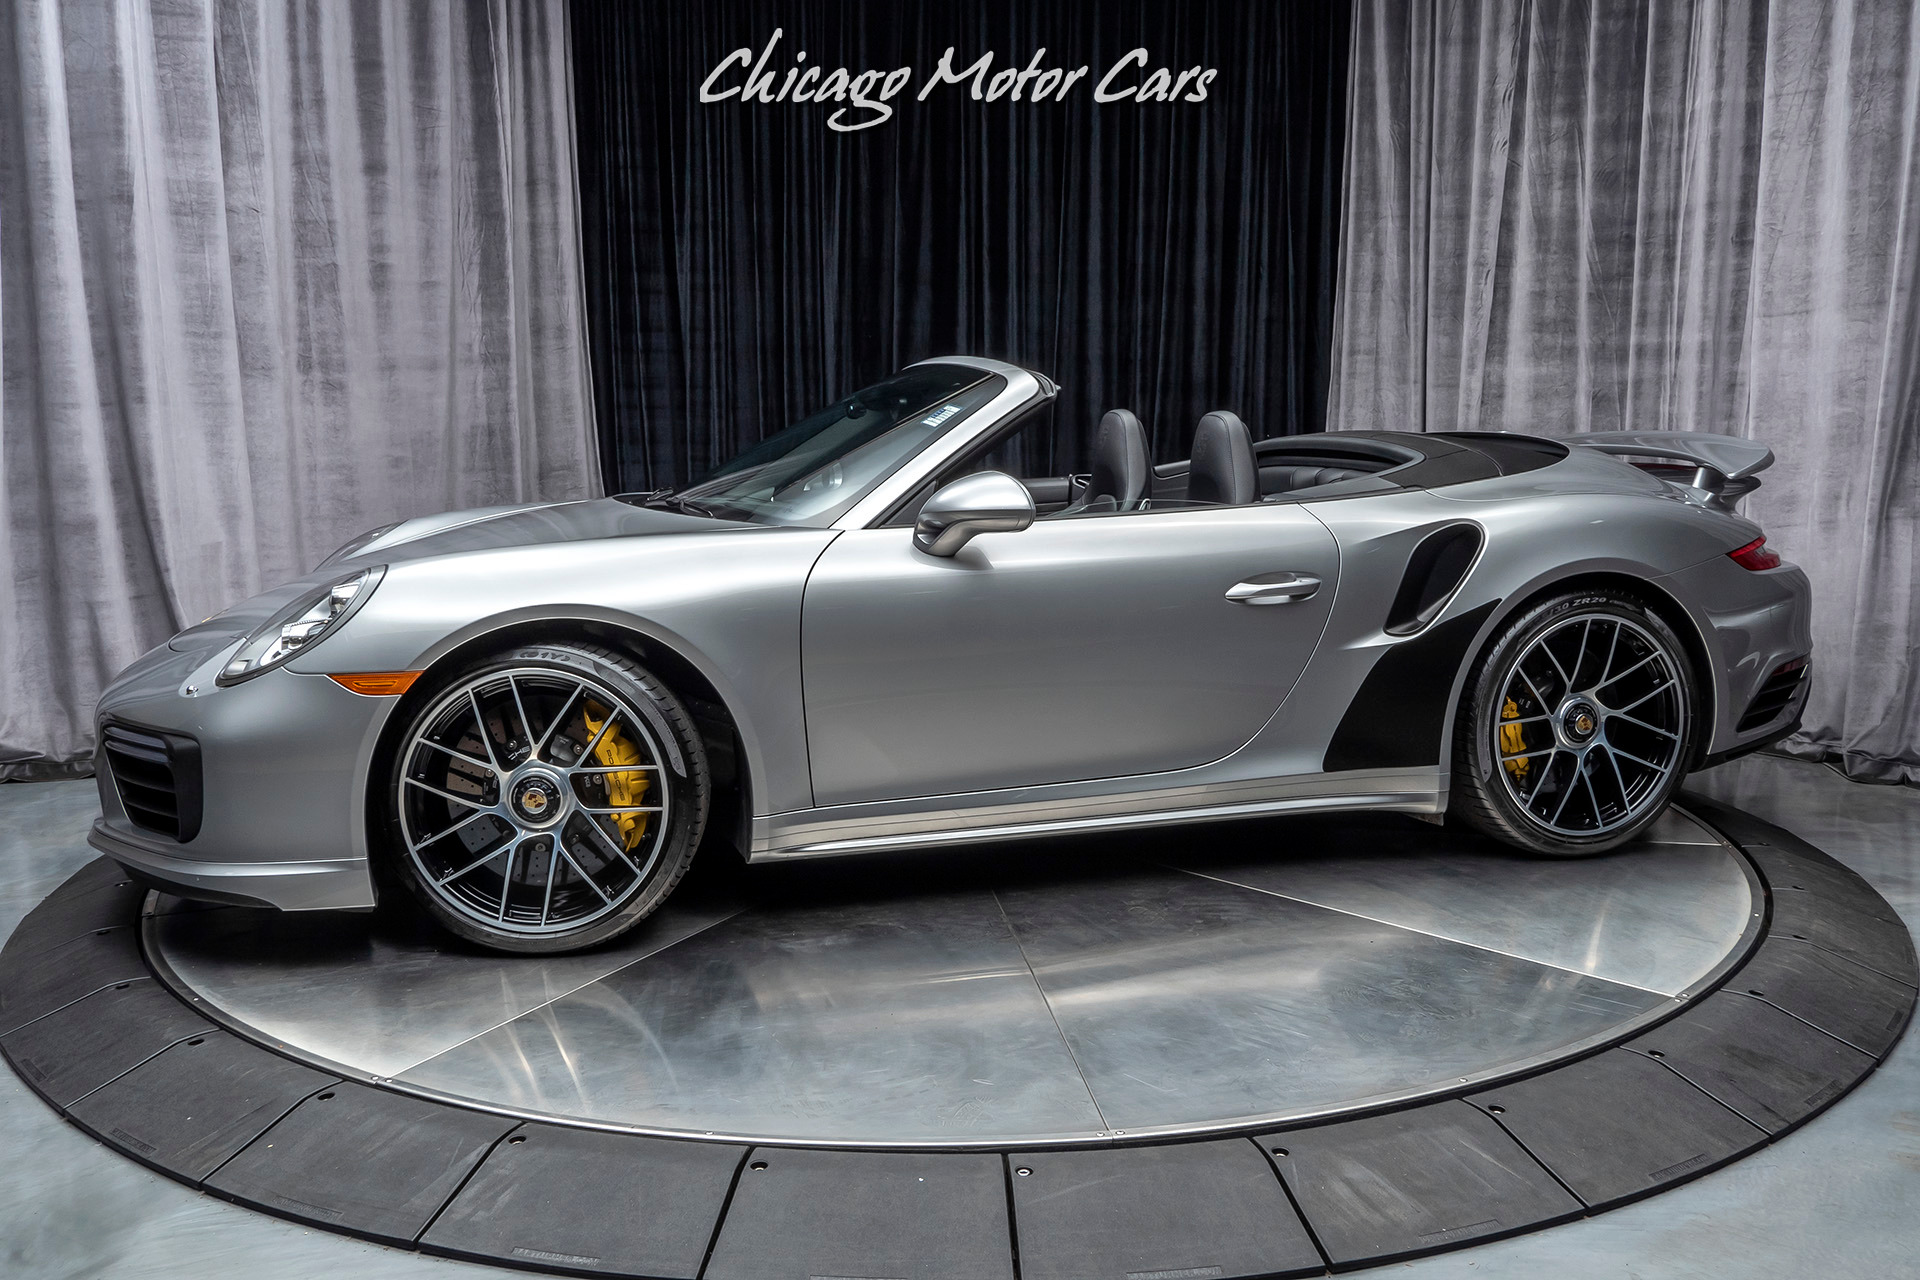 Used 2017 Porsche 911 Turbo S Cabriolet Convertible Msrp 208 185 For Sale Special Pricing Chicago Motor Cars Stock 16153